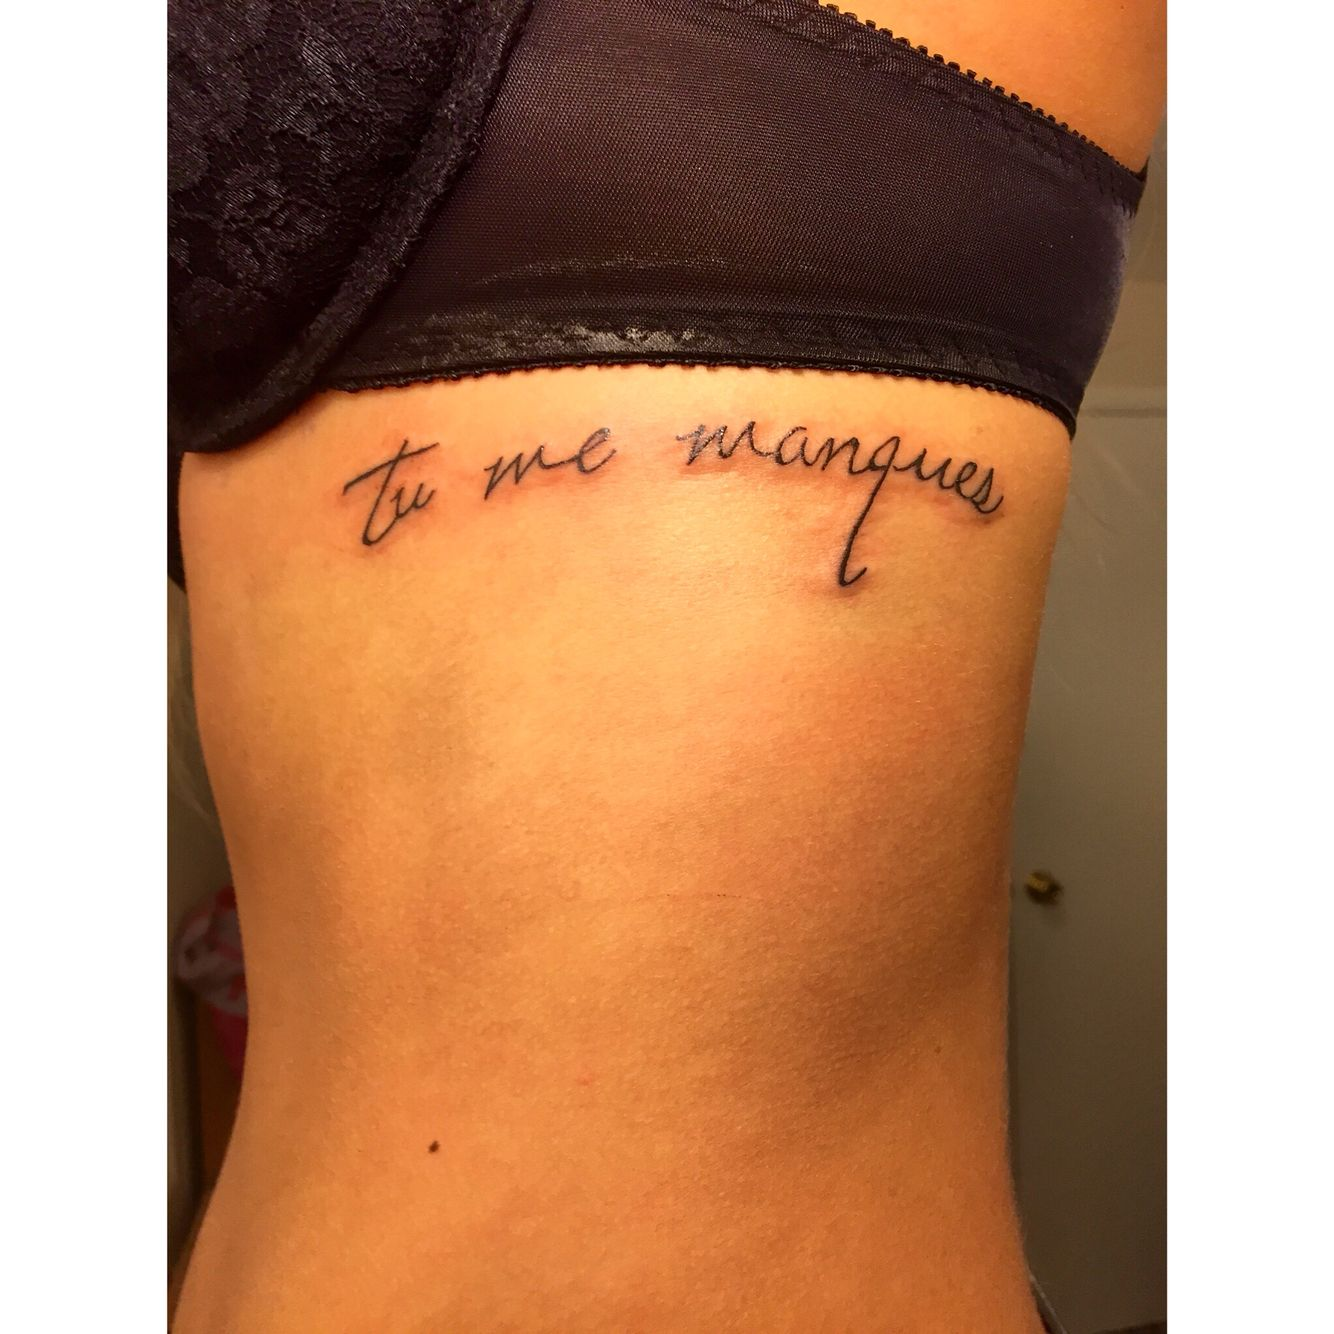 You are missing from me remembrance tattoo for my dad for My dad tattoo